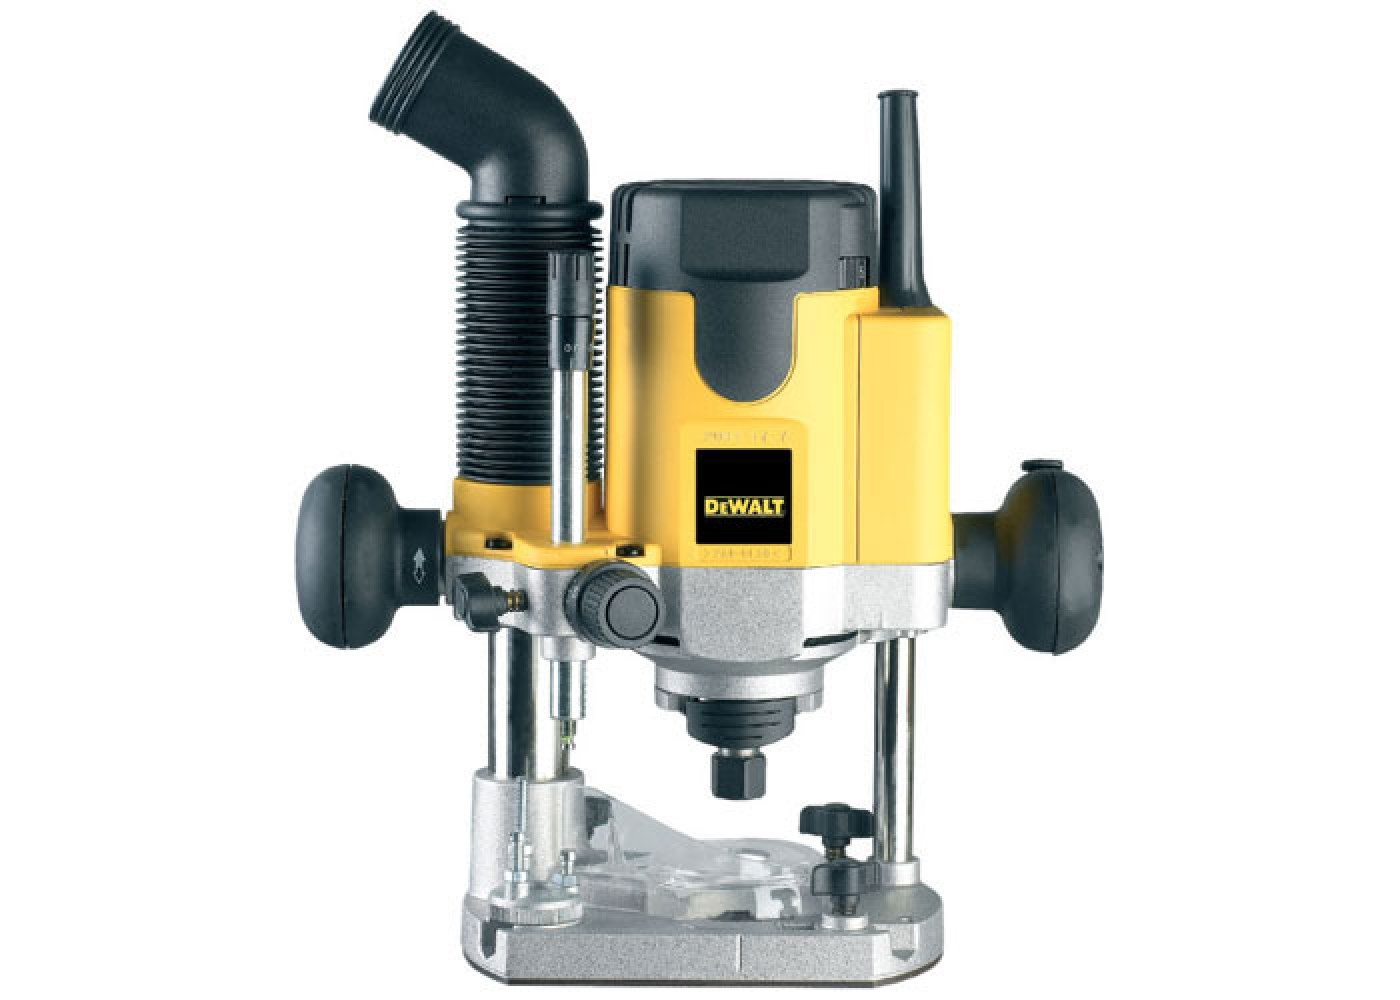 DEWALT DW622K-GB 12MM PLUNGE ROUTER VARIABLE SPEED 1400W 220V